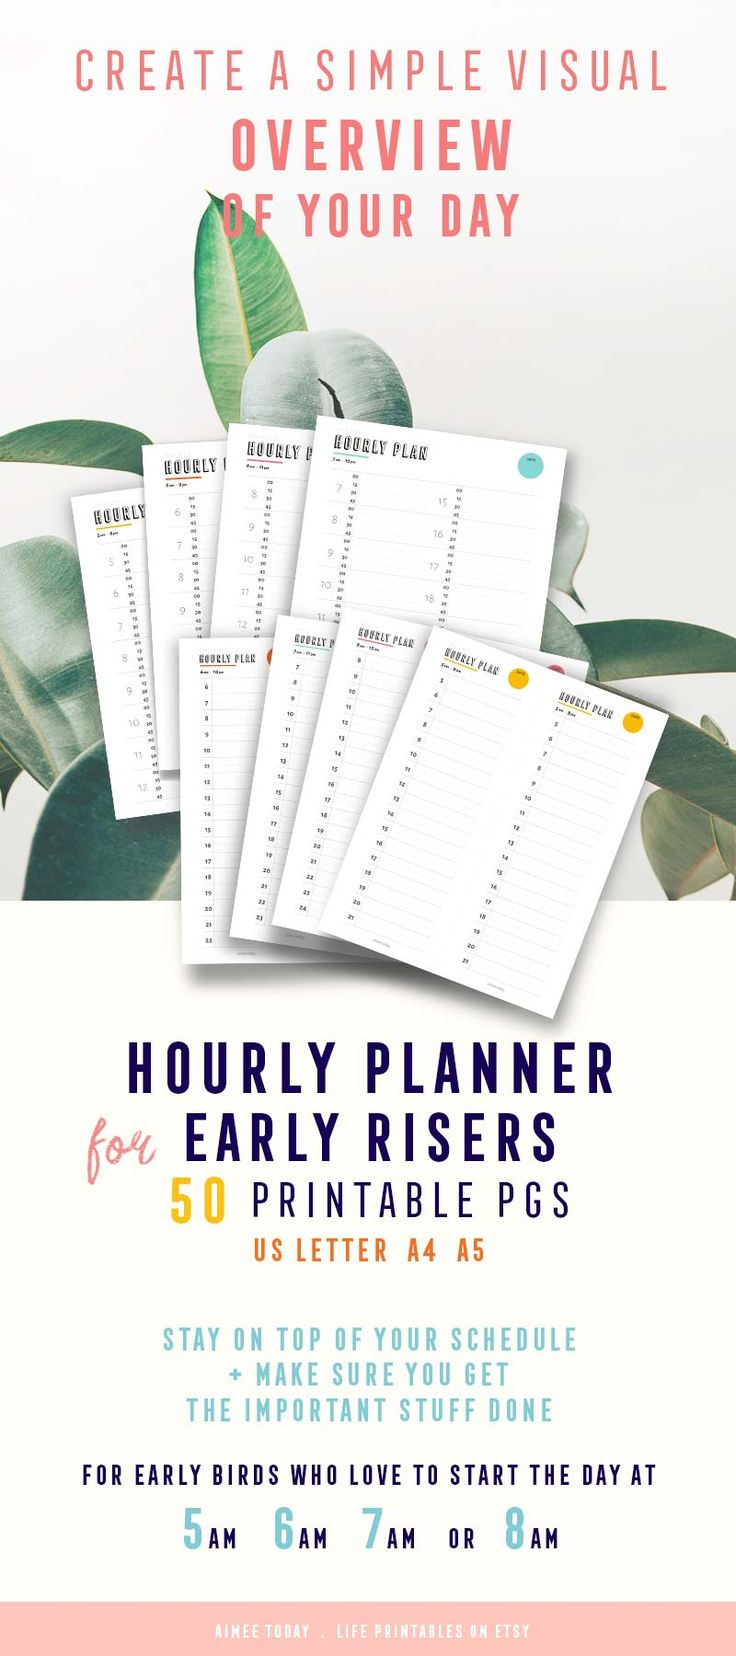 Lovely 12 Week Calendar Template Tall 15 Year Old Resumes Regular 1and1 Templates 2 Inch Heart Template Youthful 2 Page Resume Header Sample Bright2013 Calendar Templates 25  Best Ideas About Hourly Planner On Pinterest   Study ..